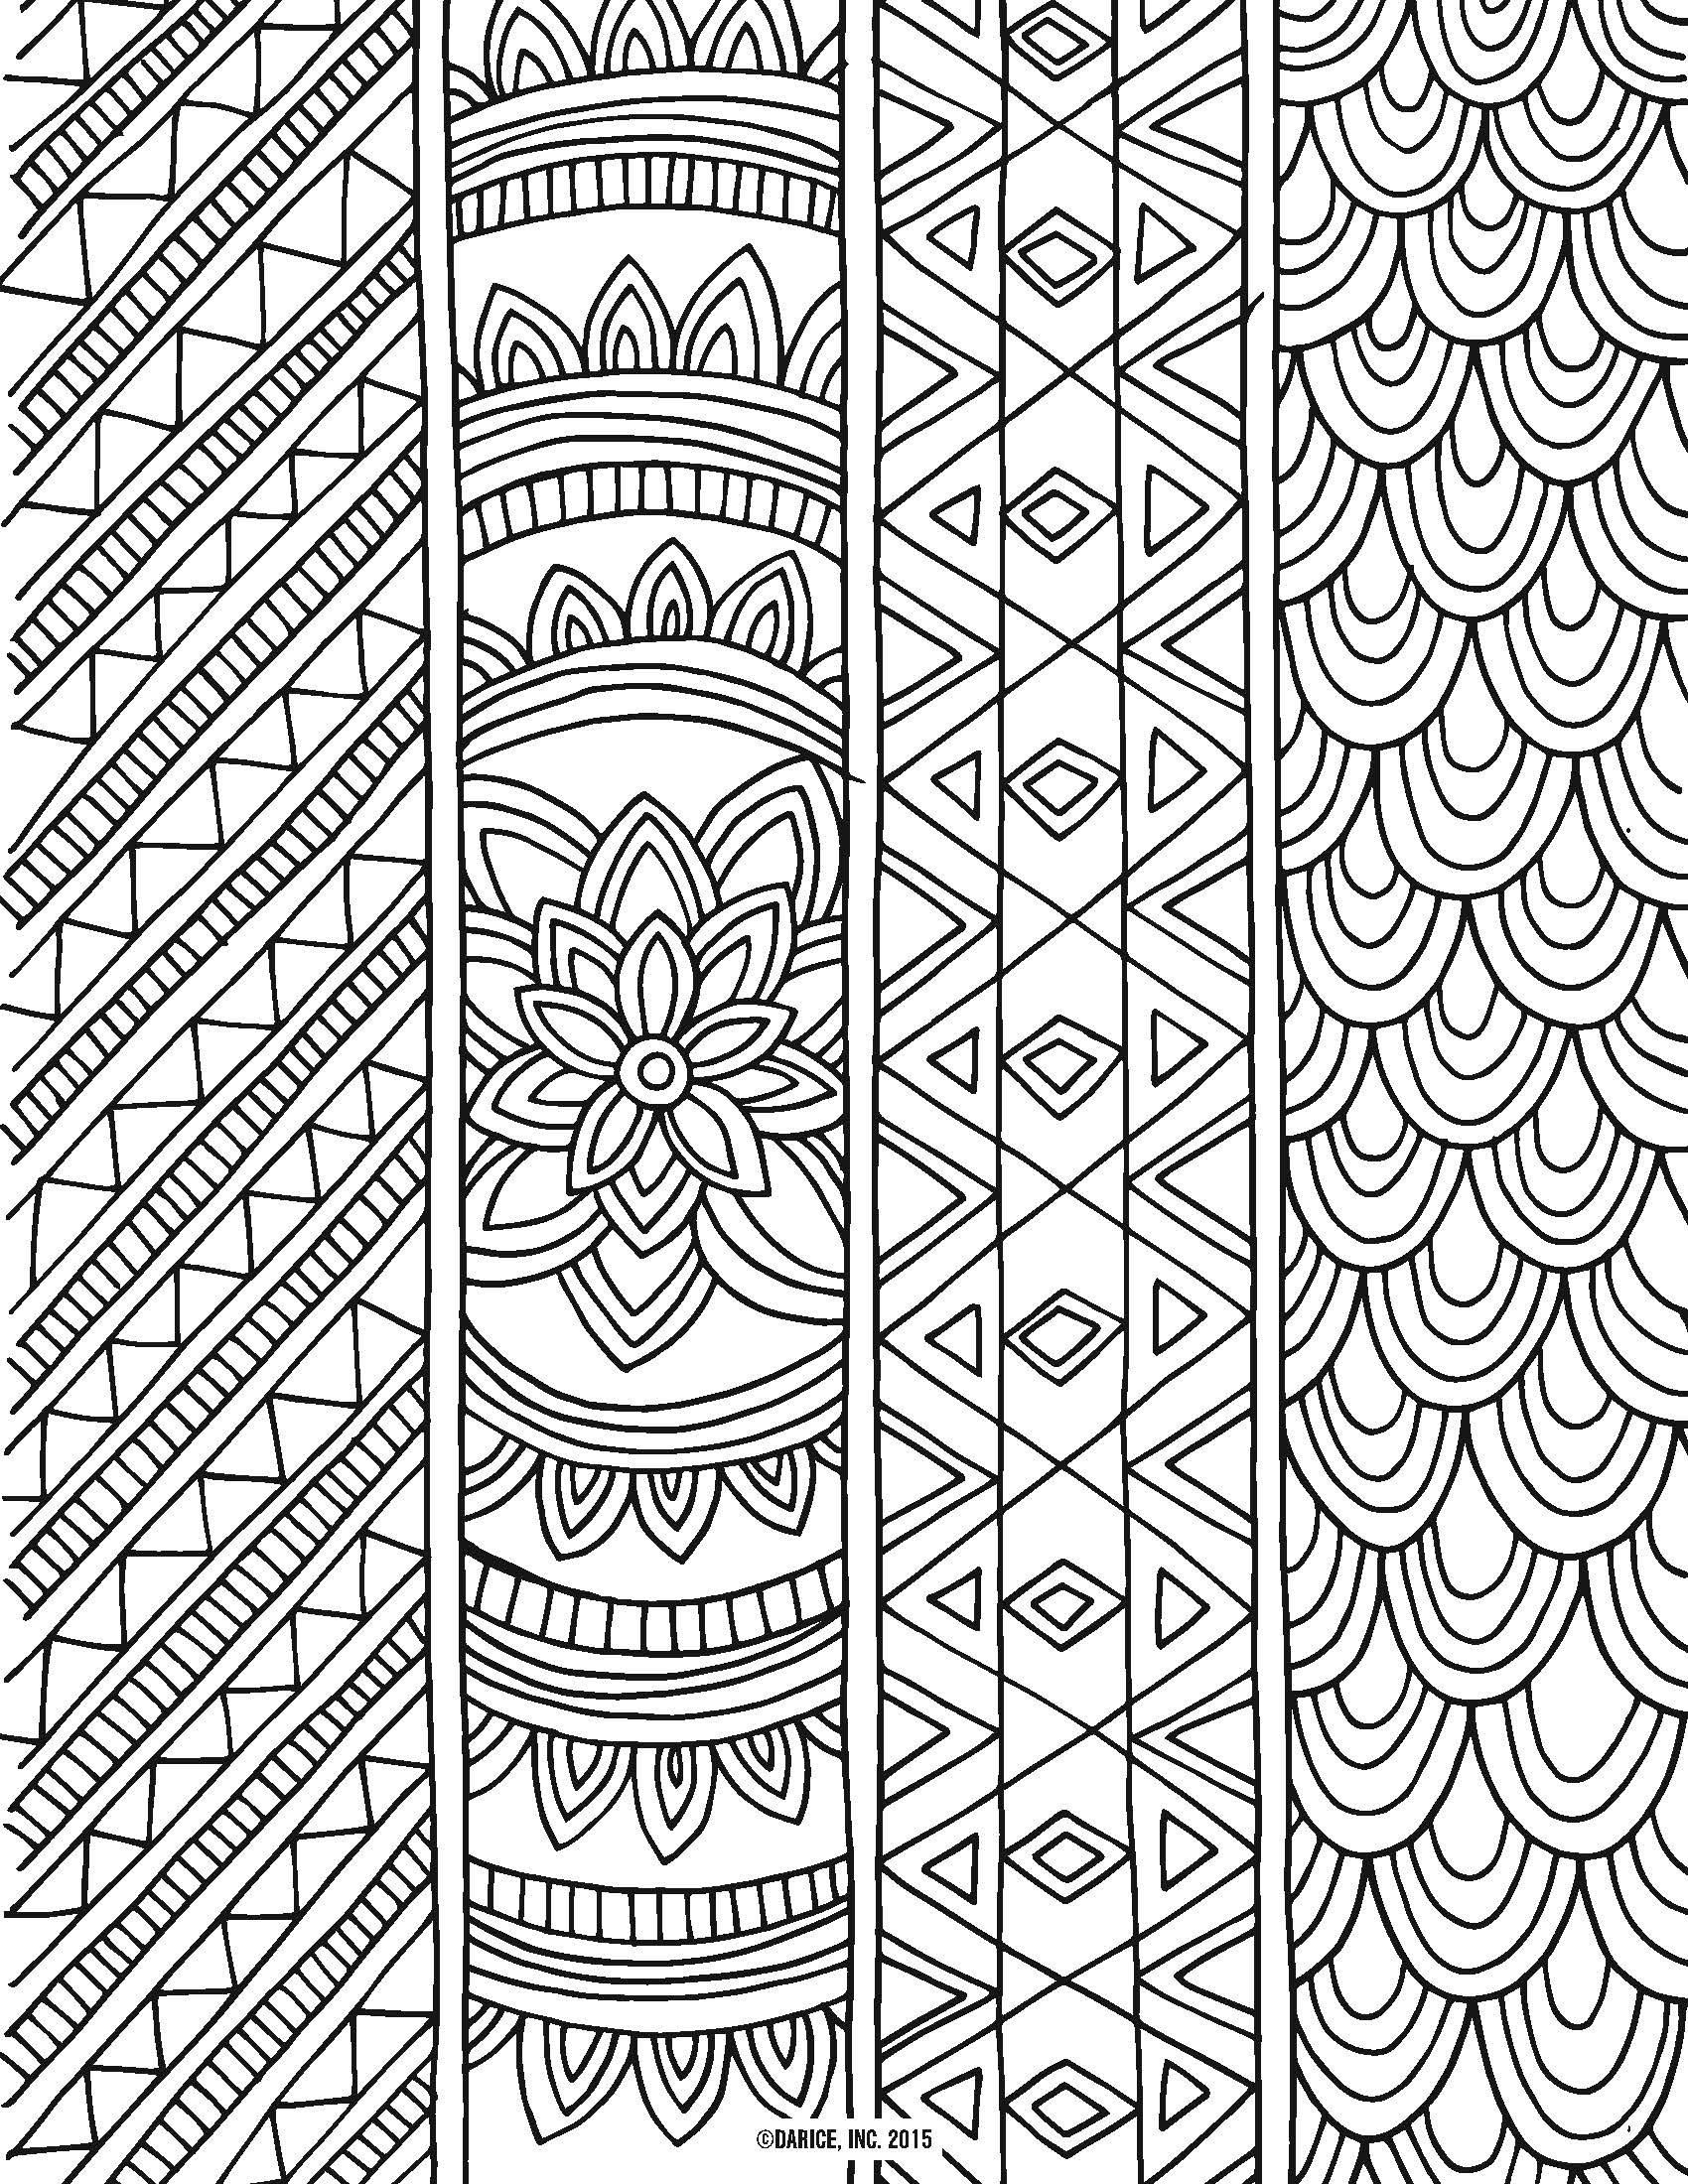 Coloring ~ Nurse Coloring Book Books Pages Adult Etsy Il 794Xn - Free Printable Coloring Books Pdf